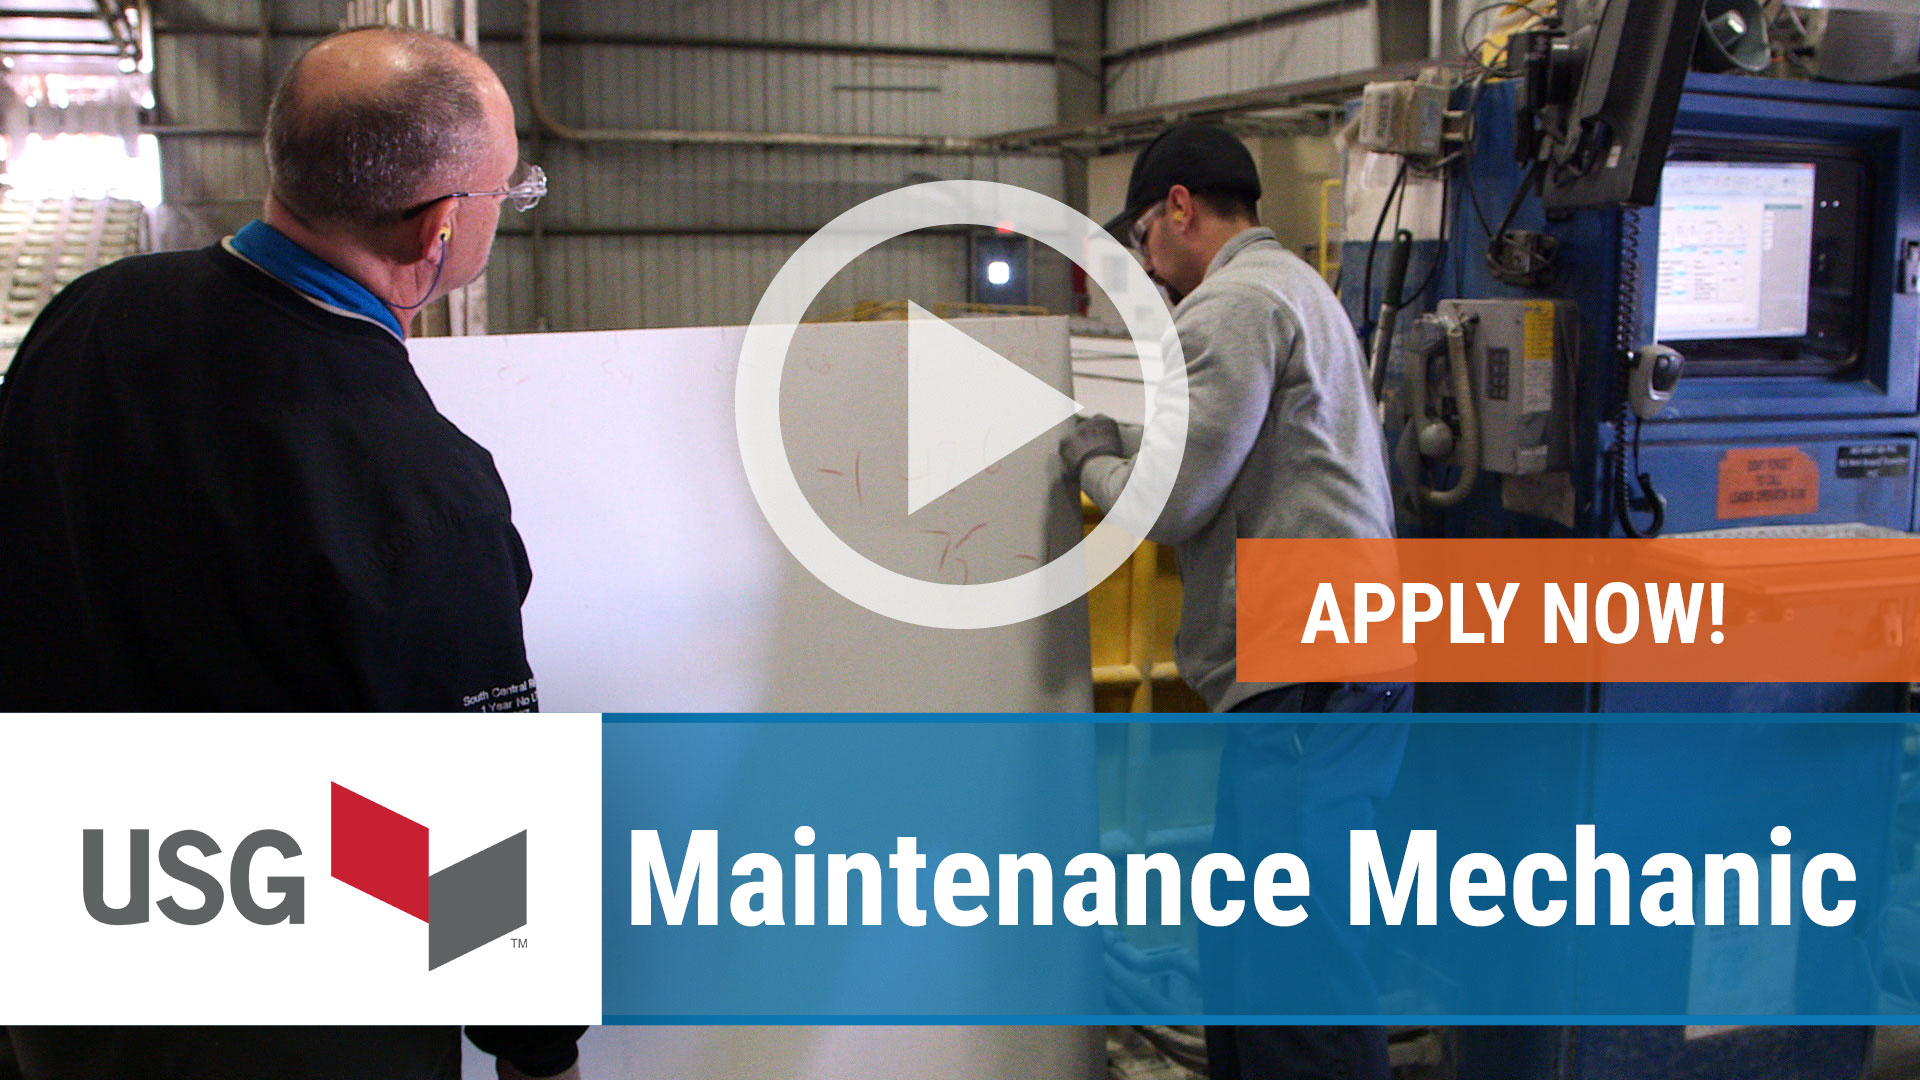 Watch our careers video for available job opening Maintenance Mechanic in Delavan, Wisconsin